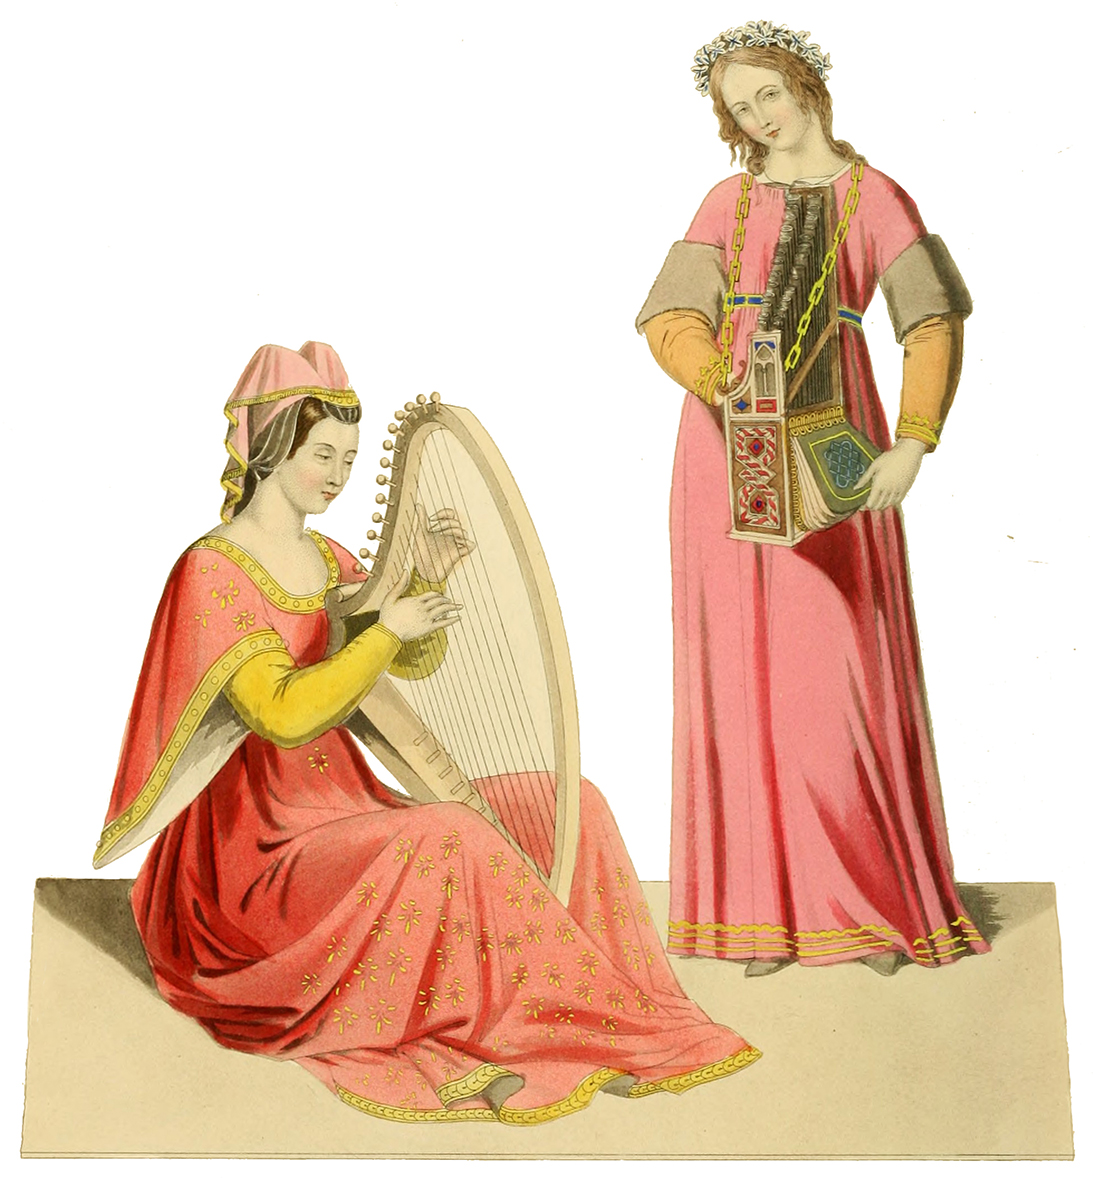 ladies early 14th century playing harp and organ